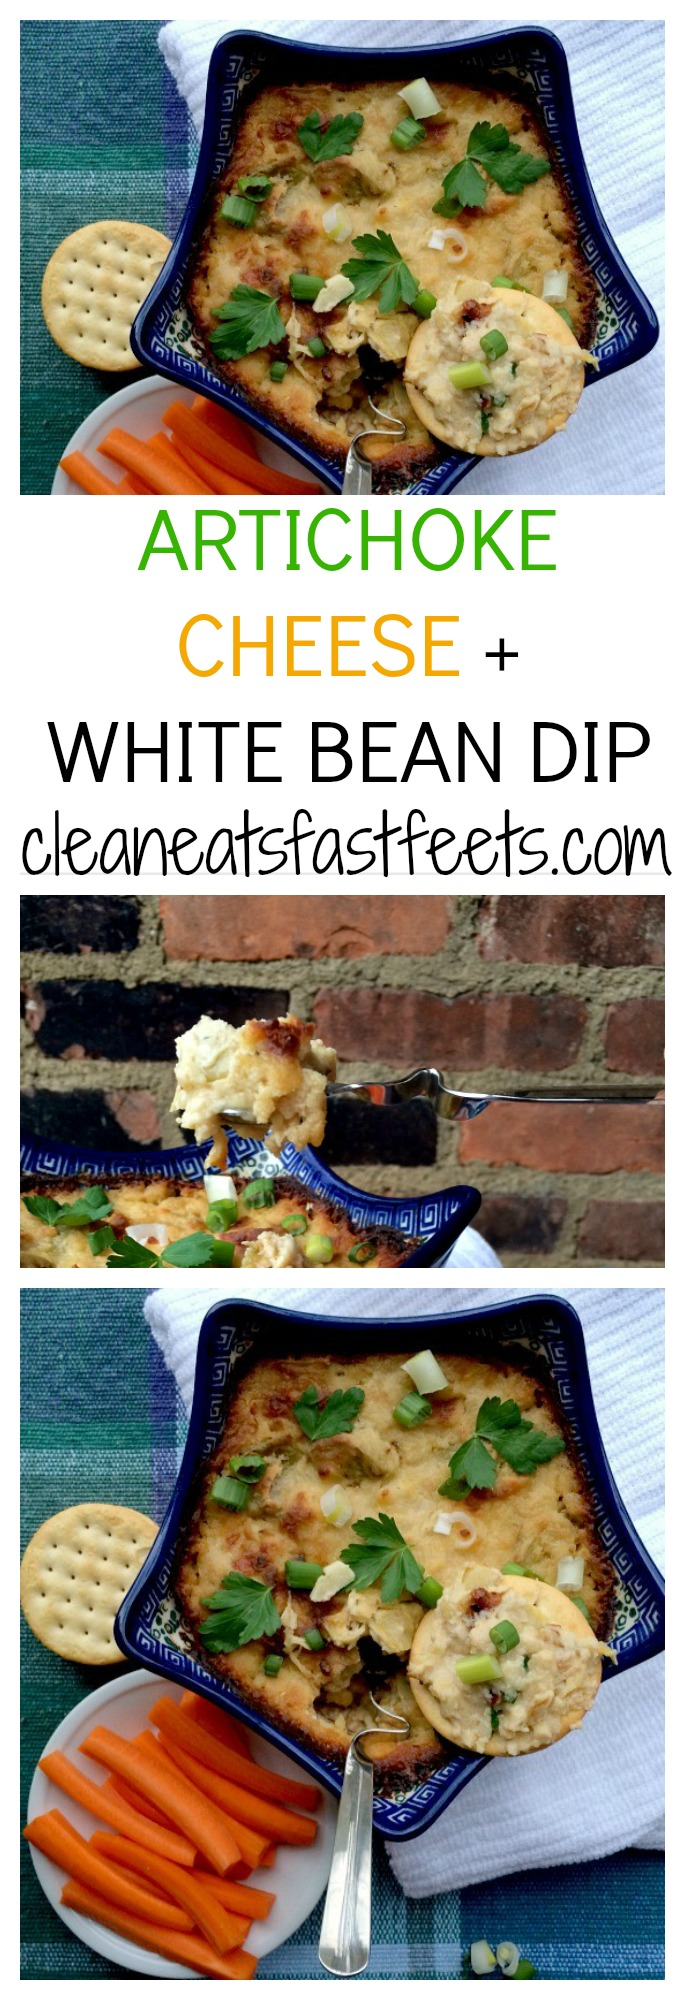 Artichoke Cheese White Bean Dip. A lightened up version of the standard Artichoke Cheese Dip, packed with protein, fiber and flavor.